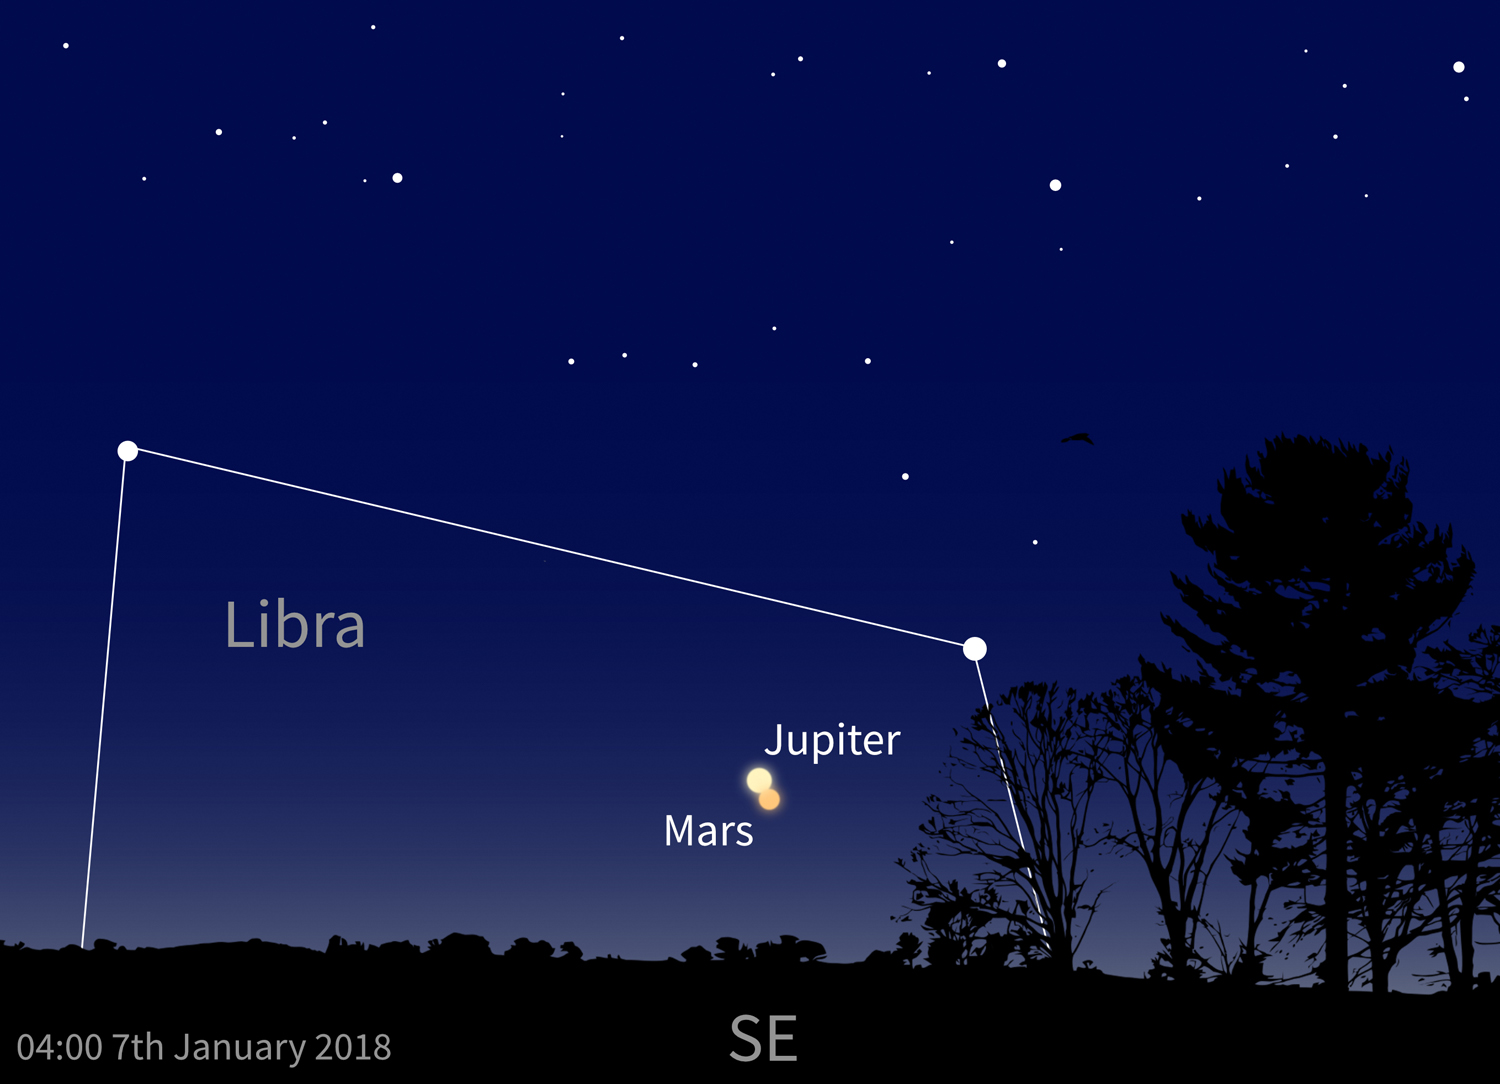 Jupiter and Mars conjunction on 7th January 2018